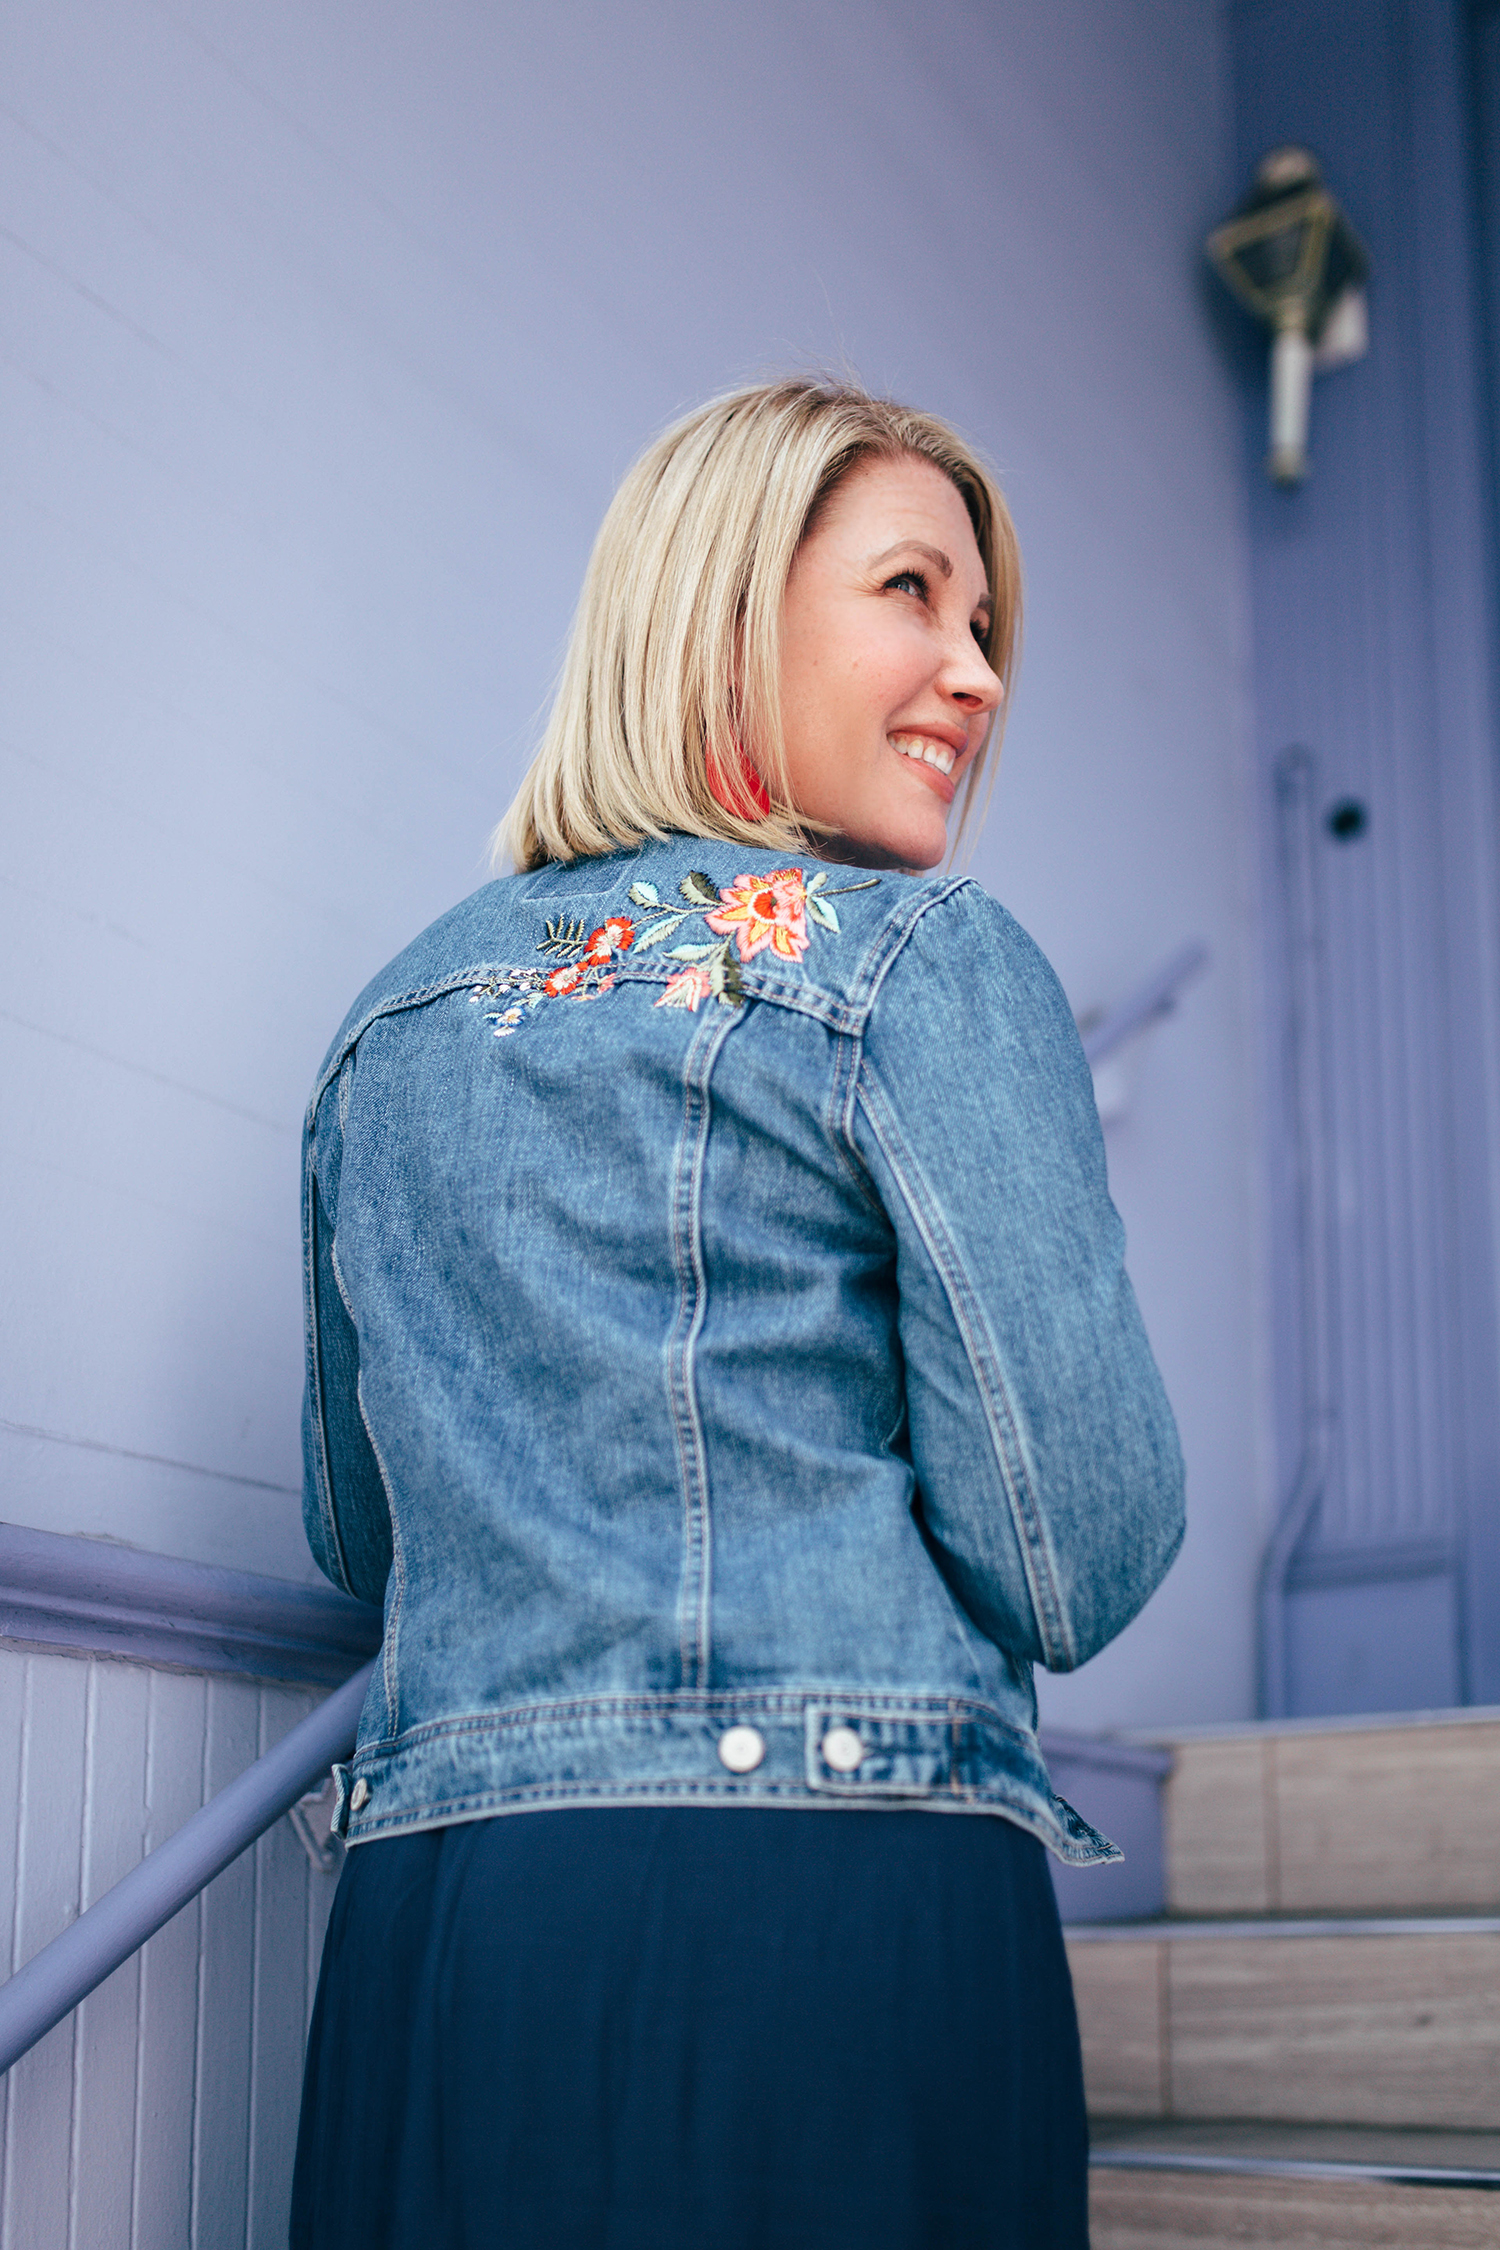 Looking for Fall Outfit Staples? An embroidered jean jacket will get TONS of wear (and compliments)!